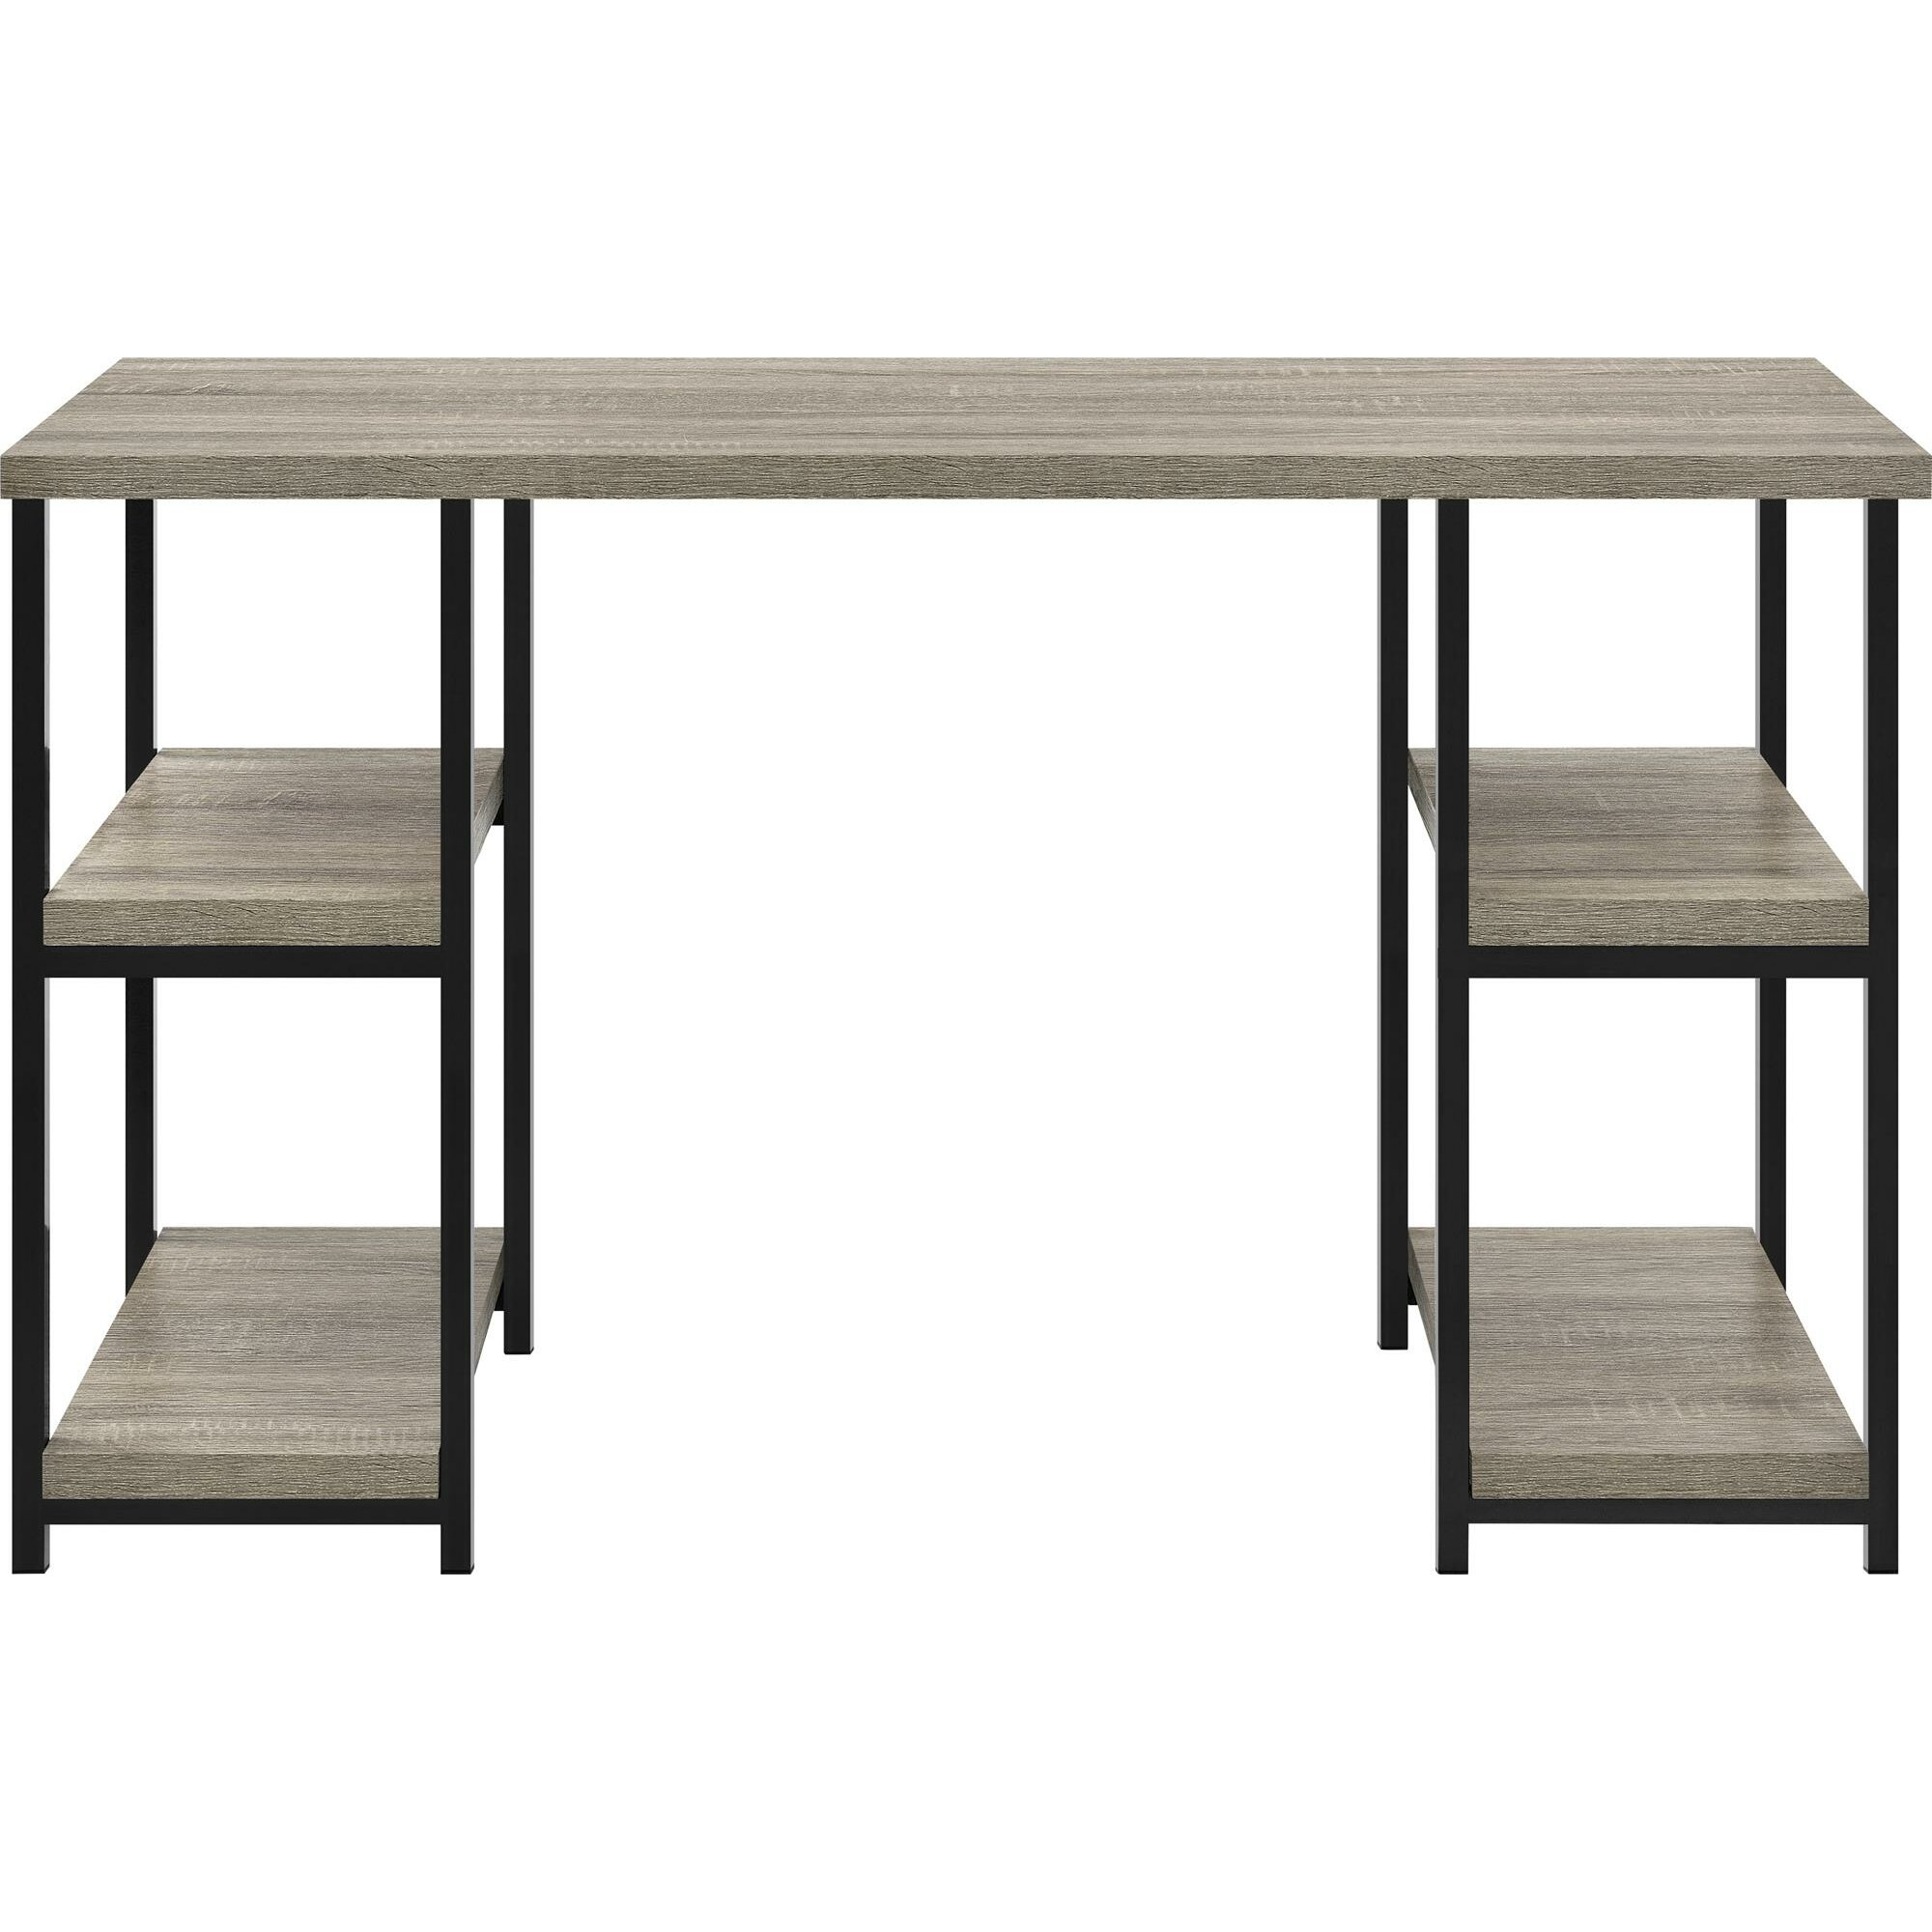 Altra computer desk reviews for Furniture 2 day shipping